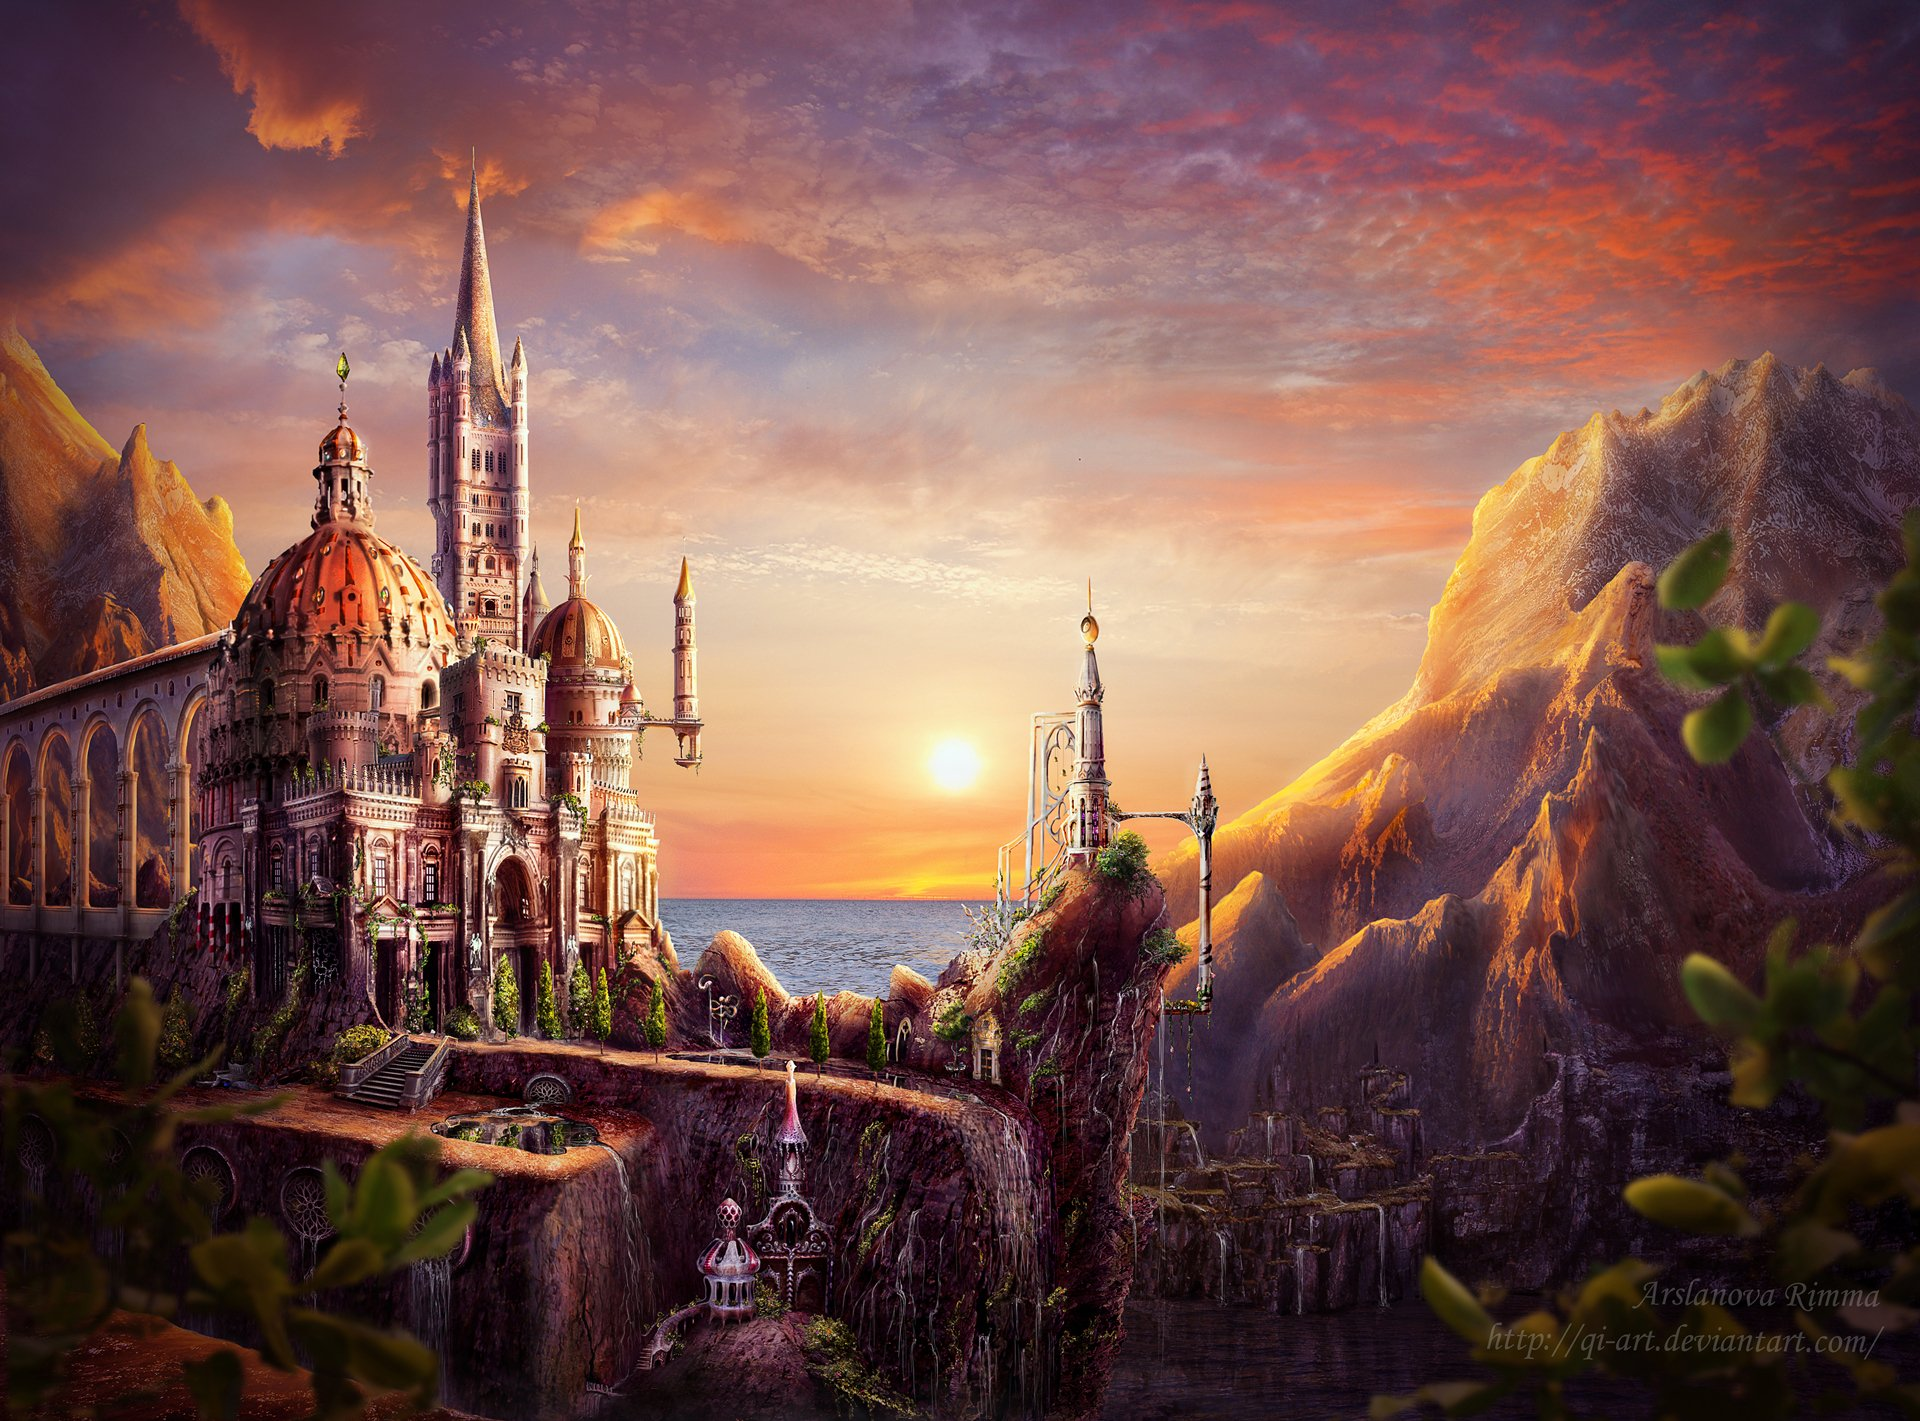 Sunset castle hd wallpaper background image 1920x1421 for Sun castle